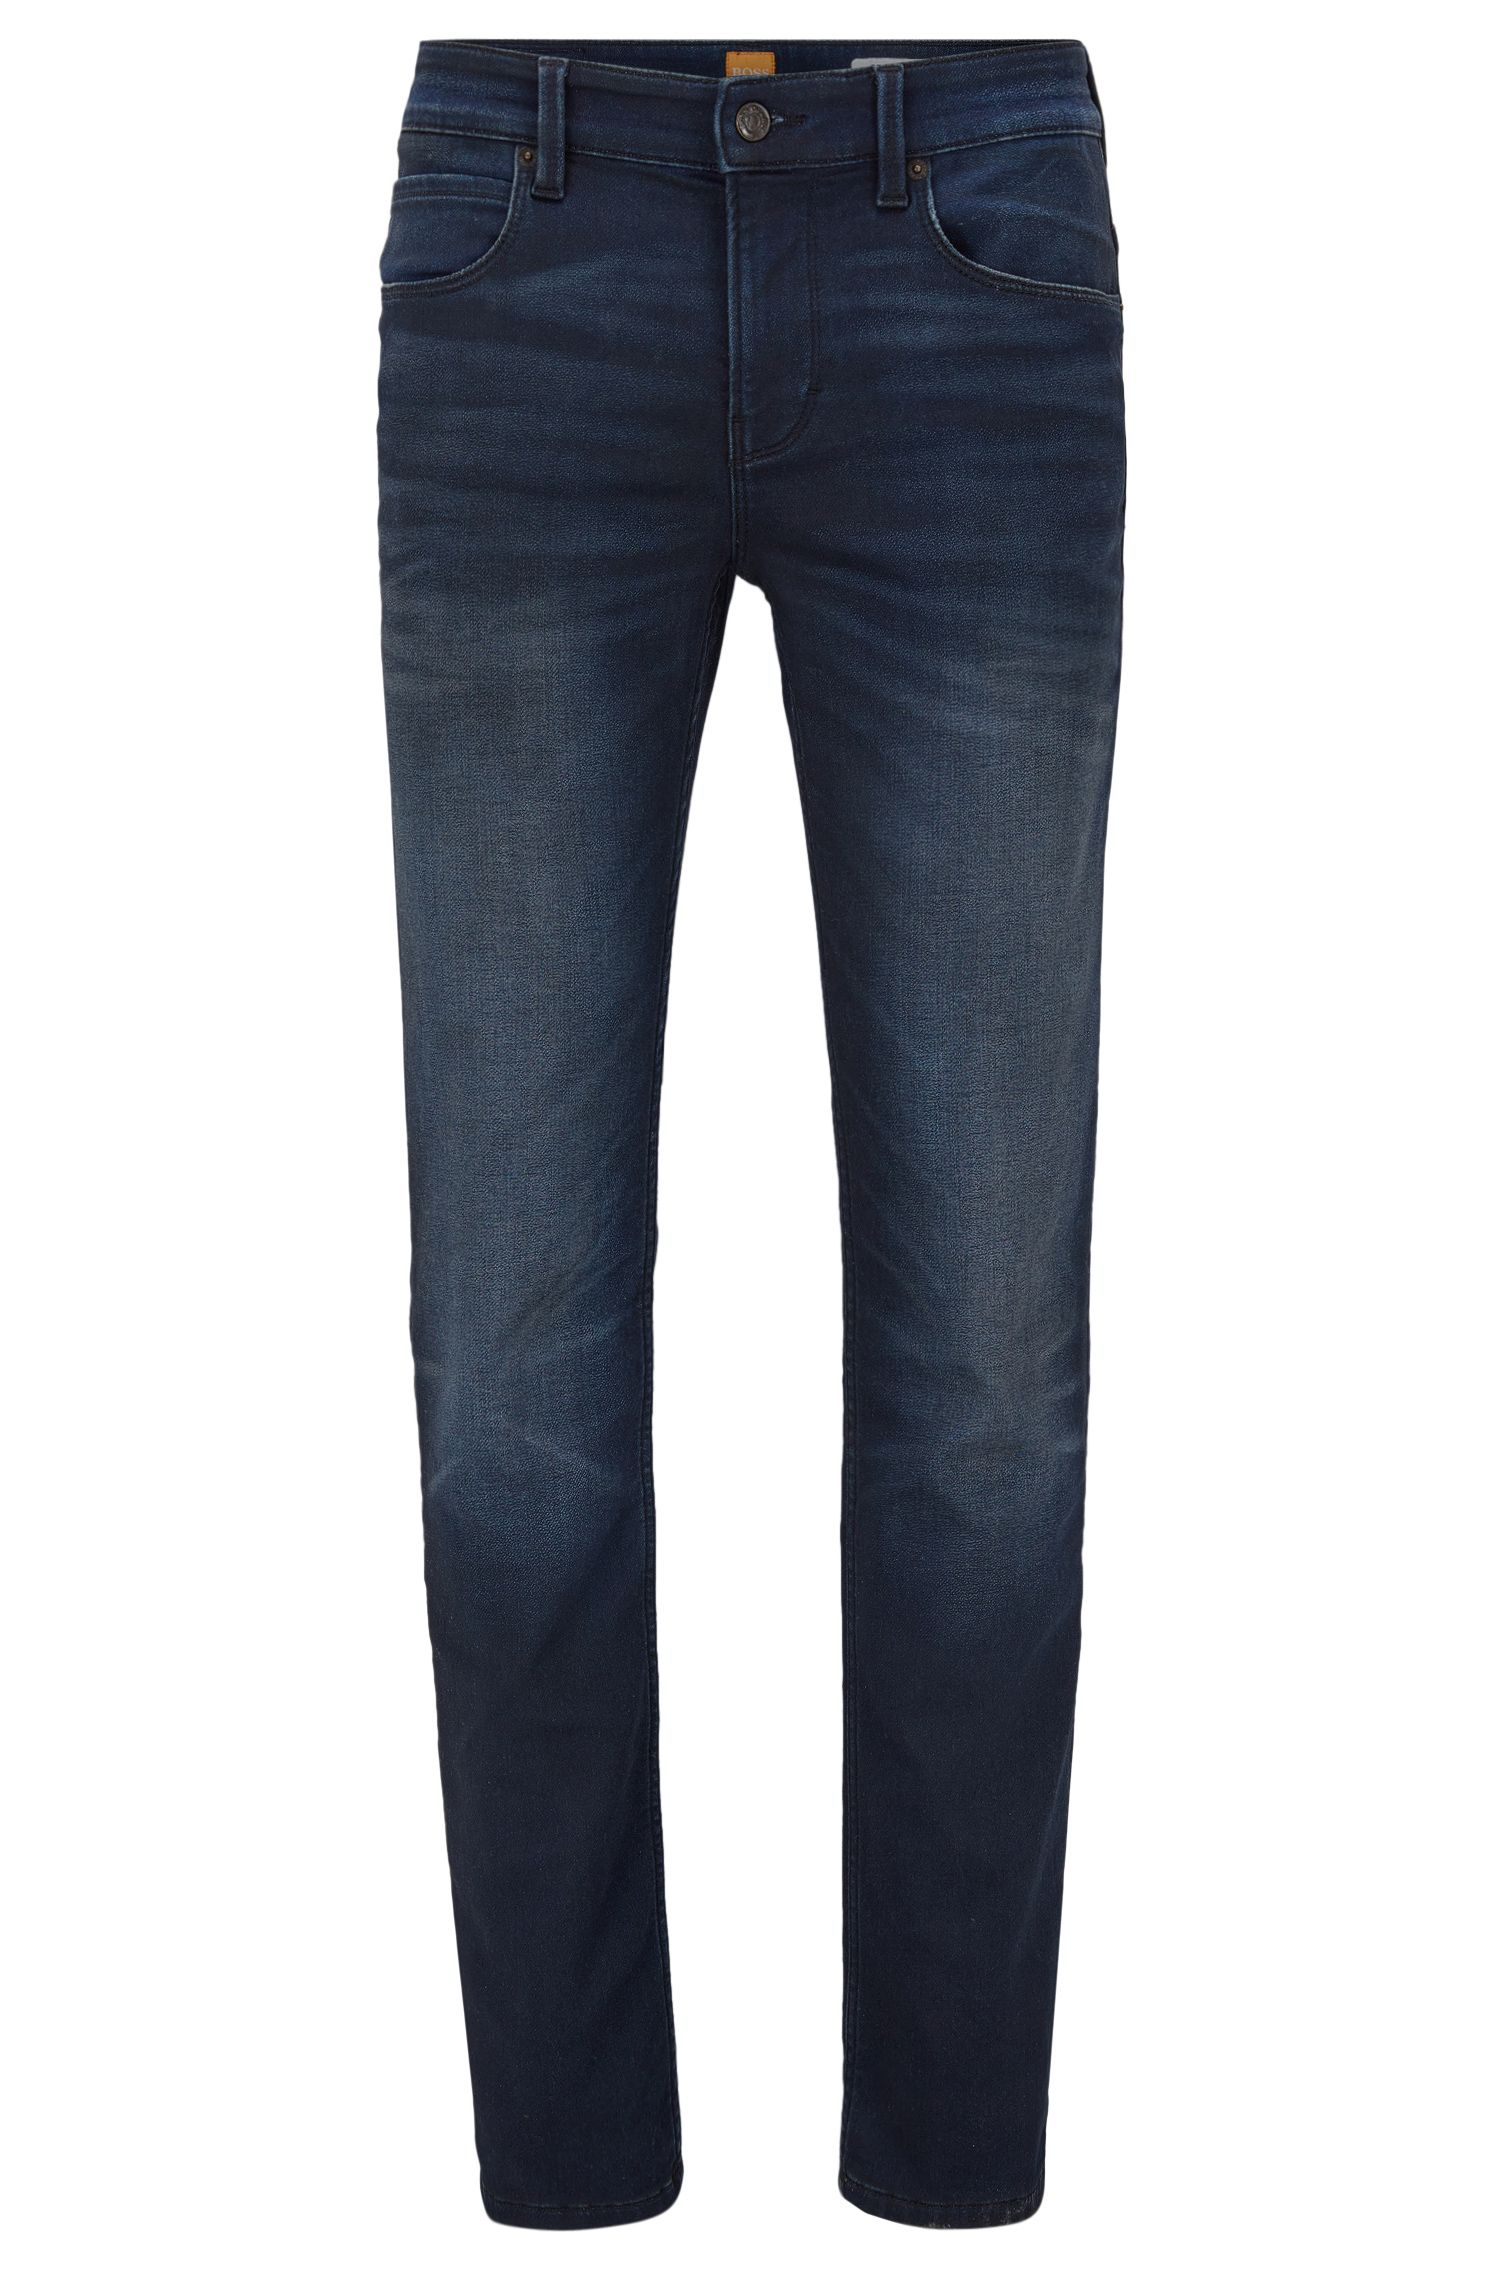 Jeans Slim Fit en denim côtelé